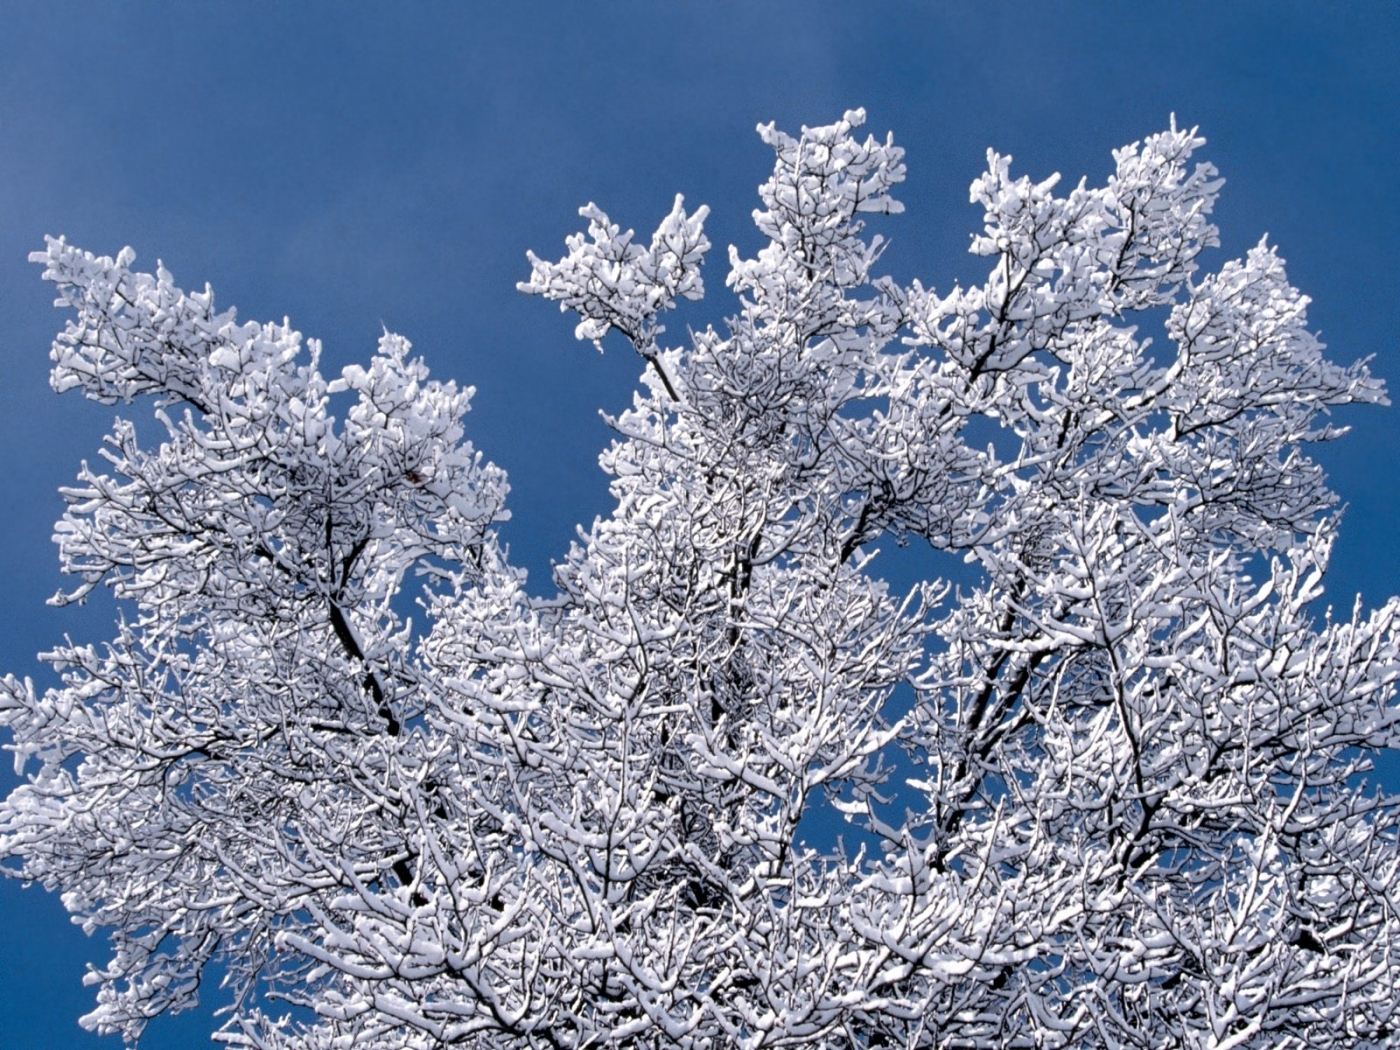 43036 download wallpaper Landscape, Winter, Trees screensavers and pictures for free